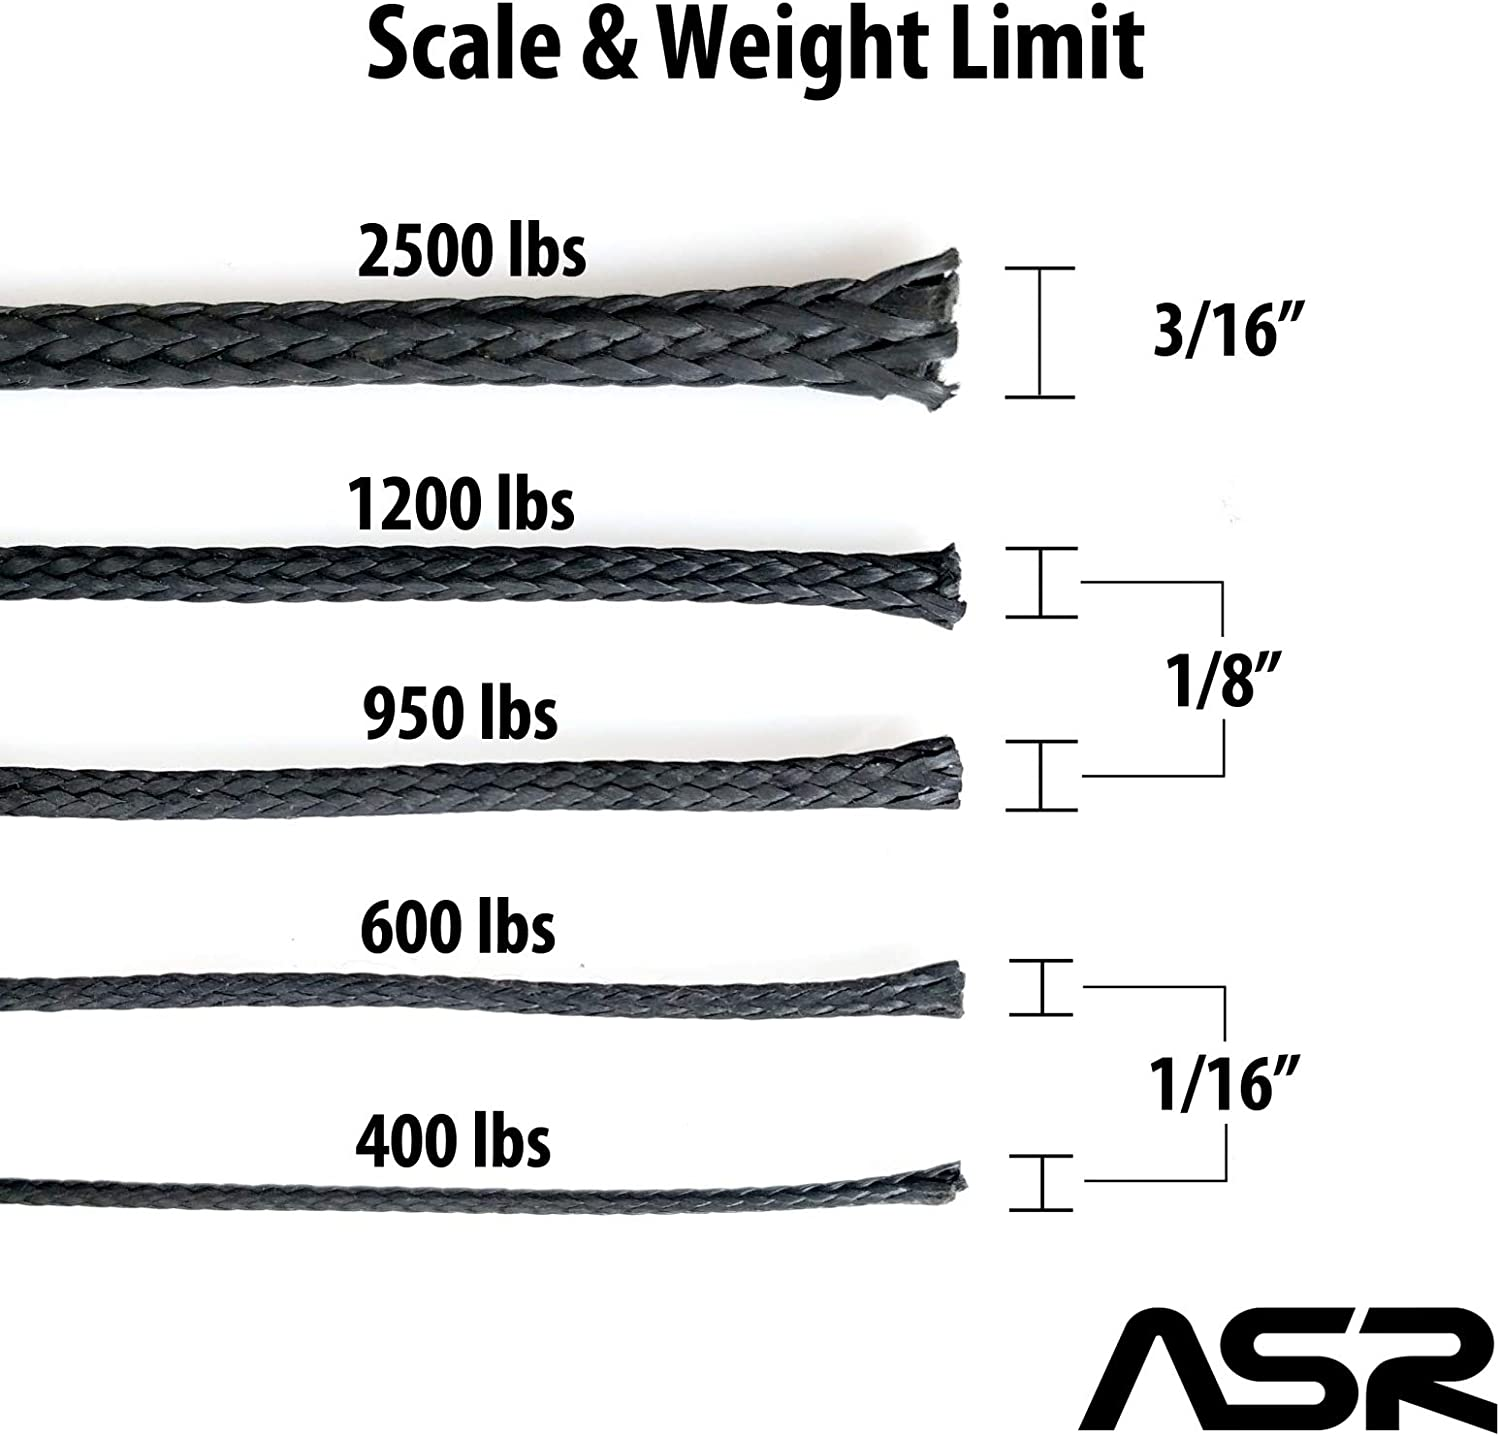 ASR Outdoor Technora Composite Survival Cord Rope 1200lb Breaking Strength